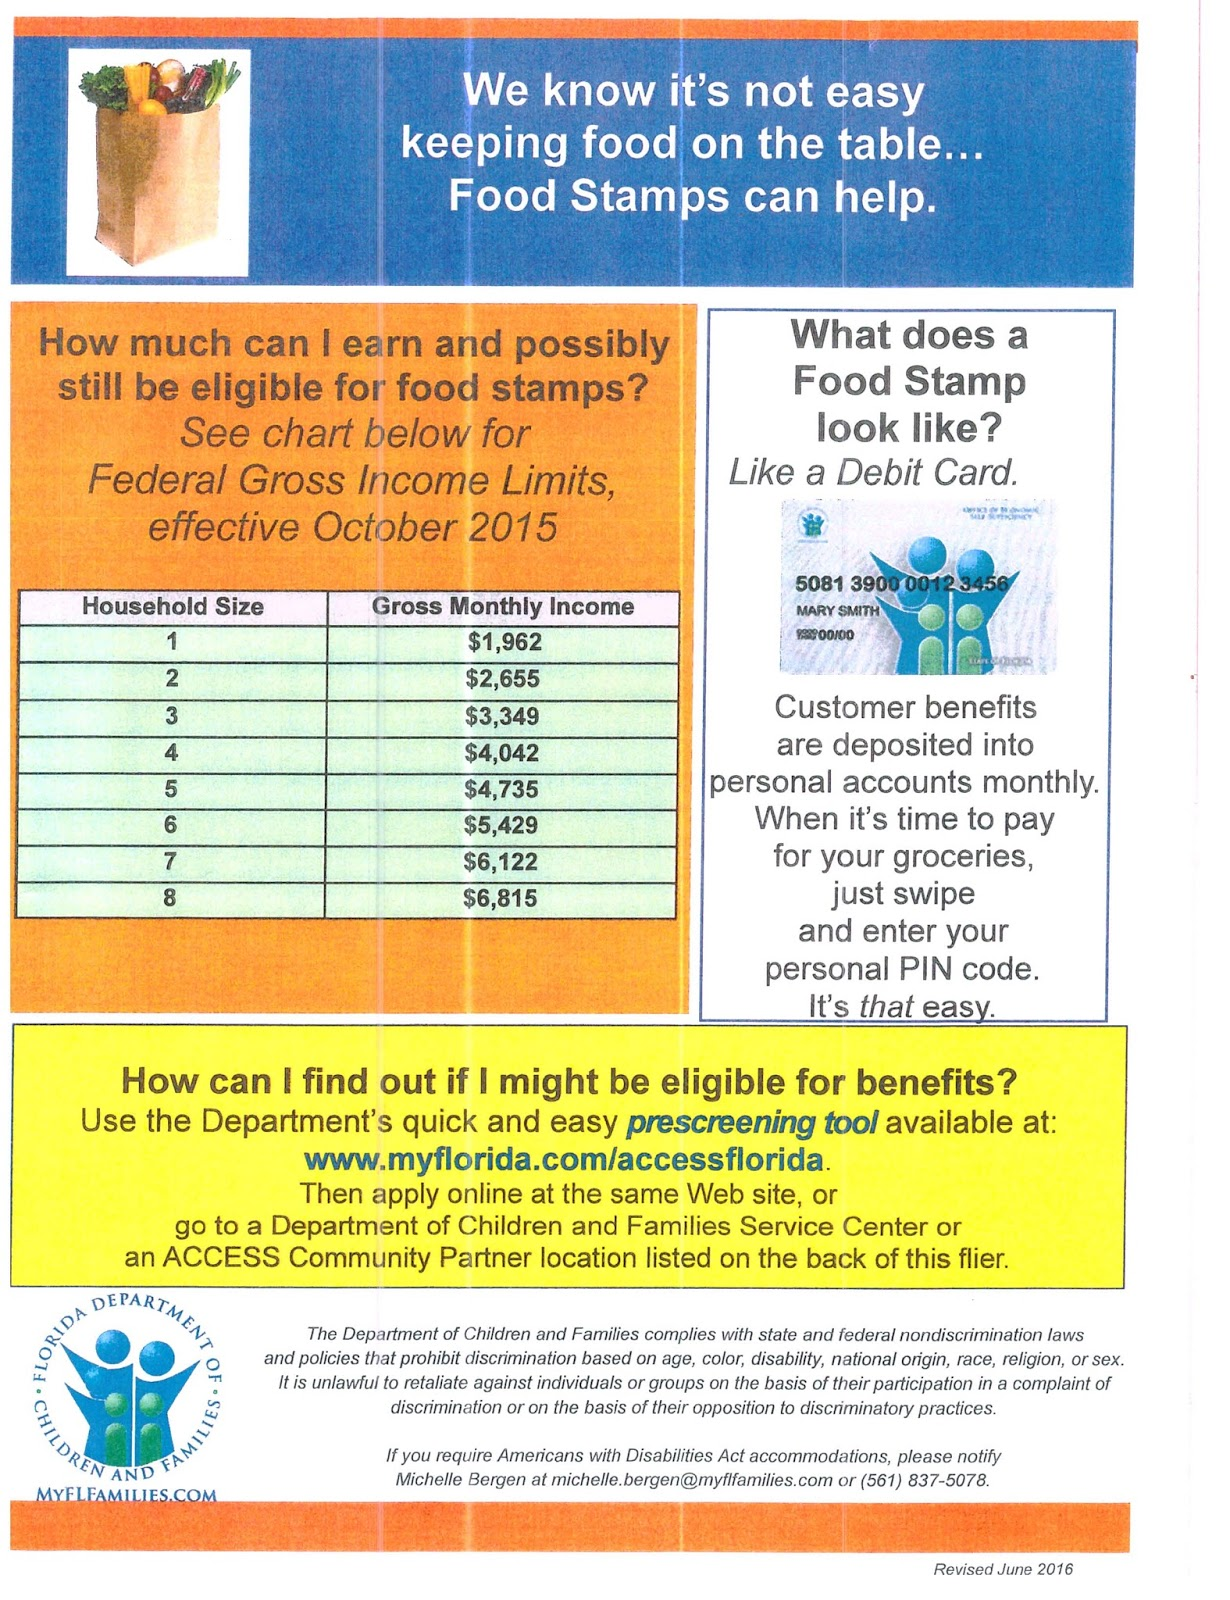 SNAP Food Stamps Eligibility Screening Tool